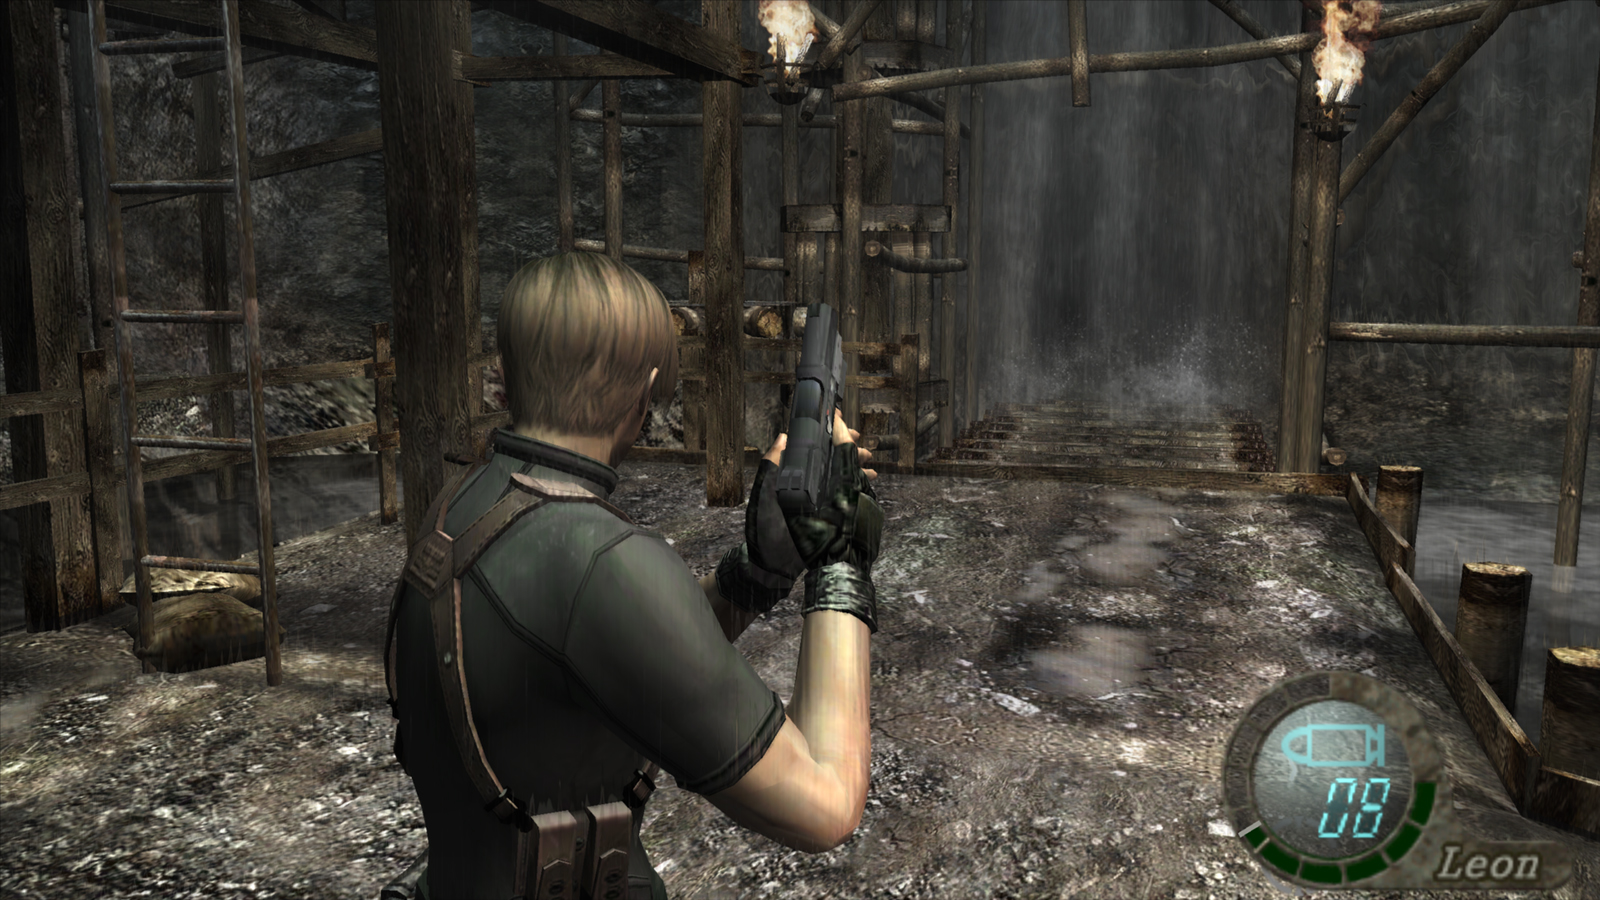 Download resident evil 4 pc free full version 100% no survey 2015.